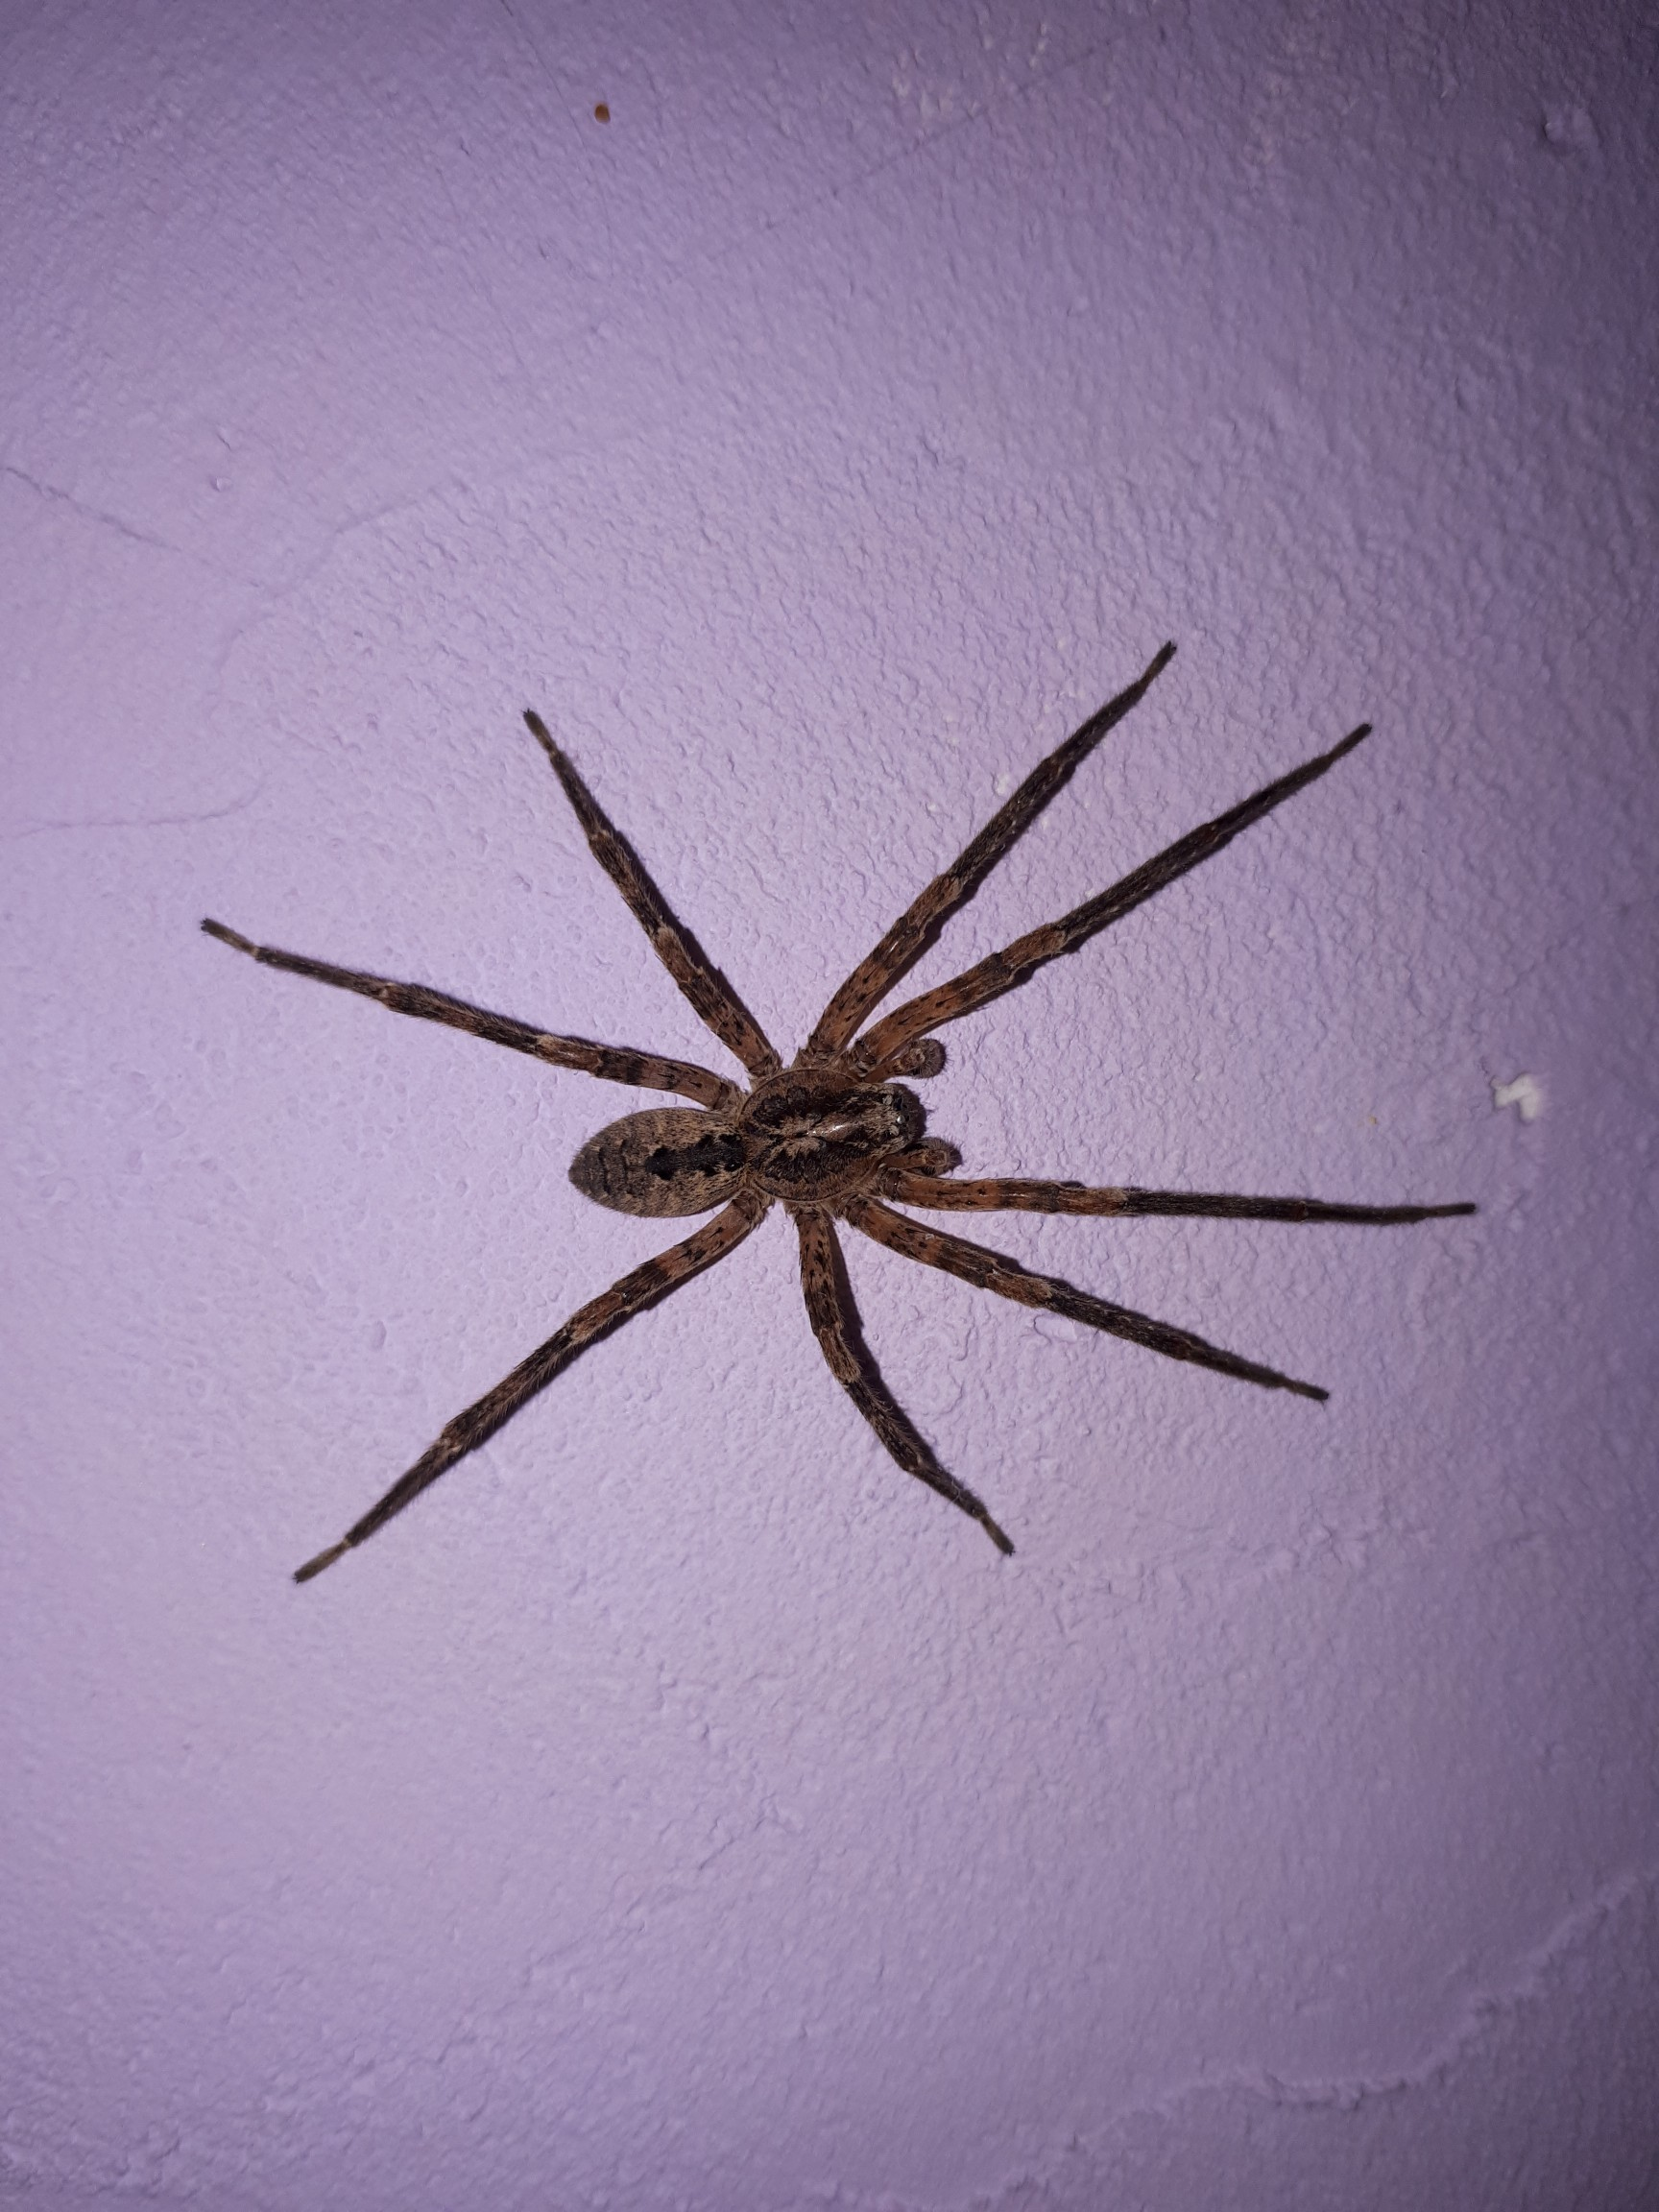 Wonderful This Markings Seem To Match A Giant House What Isit This Markings Seem To Match A Giant House Giant House Spider Spiders Portland Oregon Giant House Spider Wisconsin curbed Giant House Spider